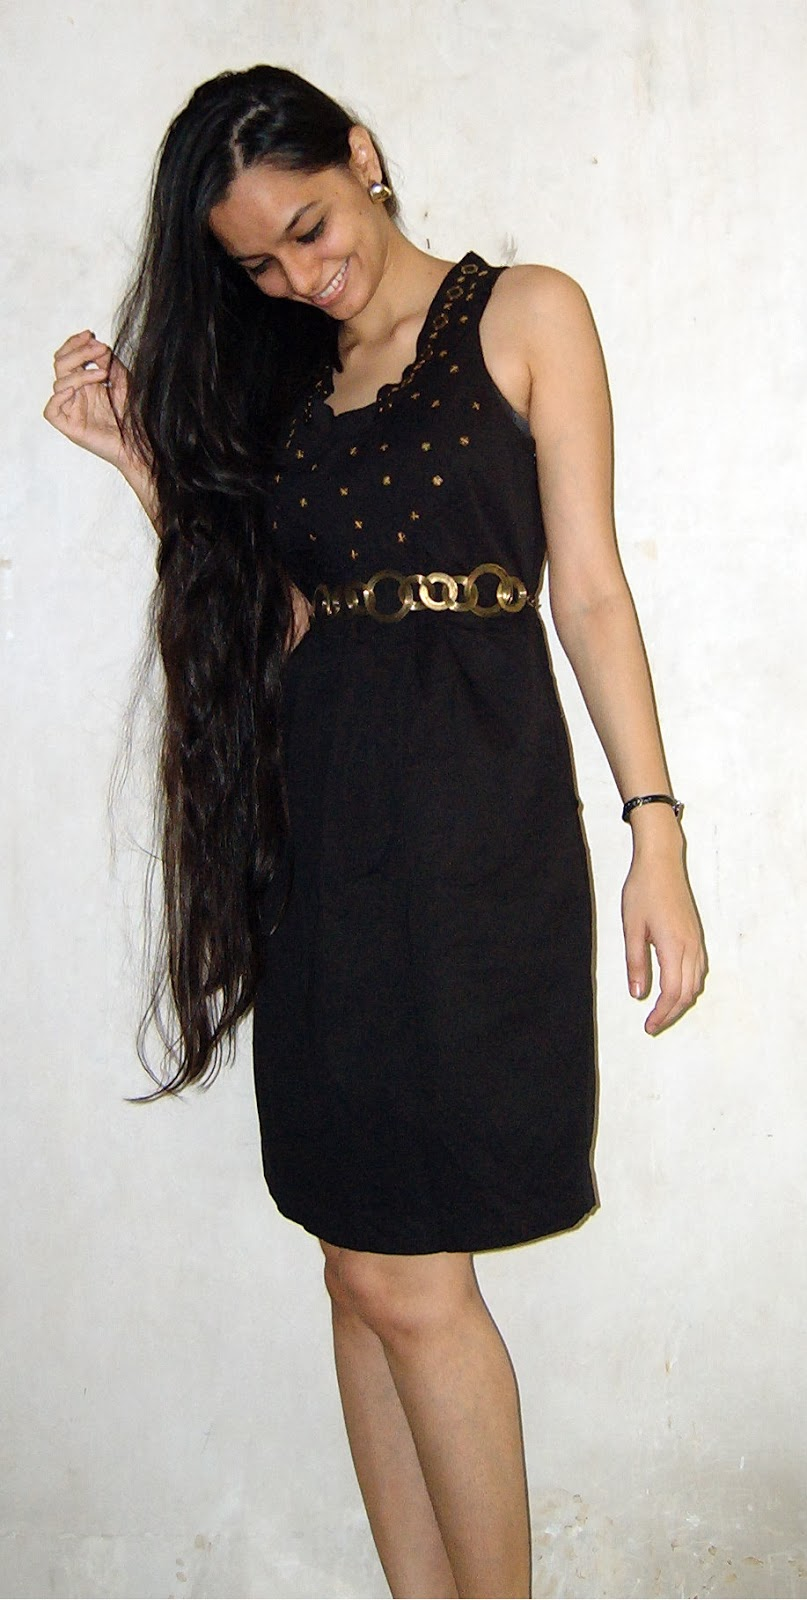 LBD, Little black dress, gold accents, black and gold dress, party outfit